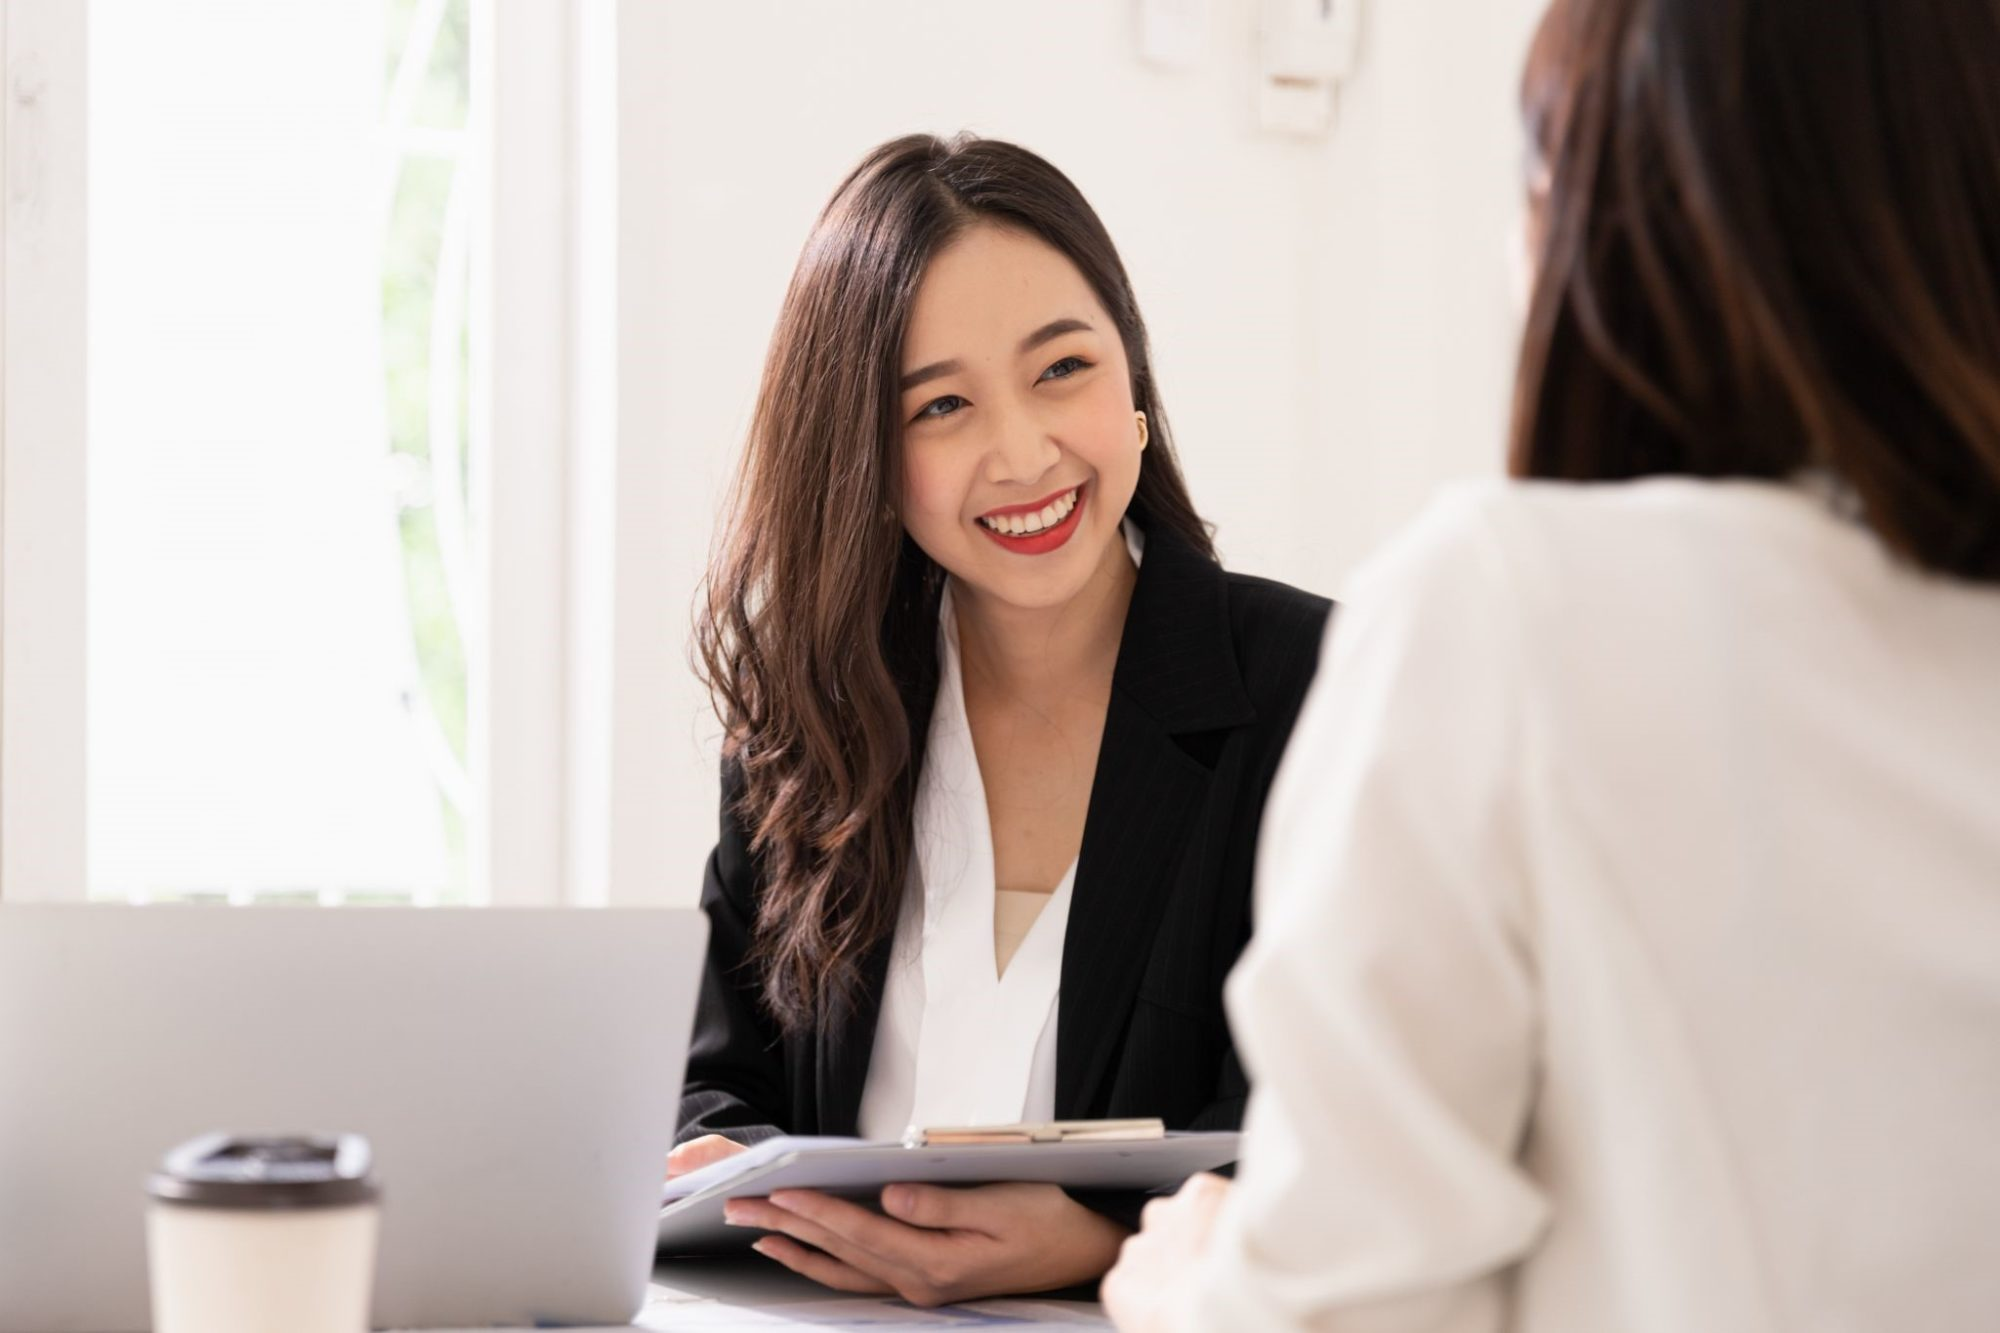 A human resource manager is interviewing an applicant for an open position.